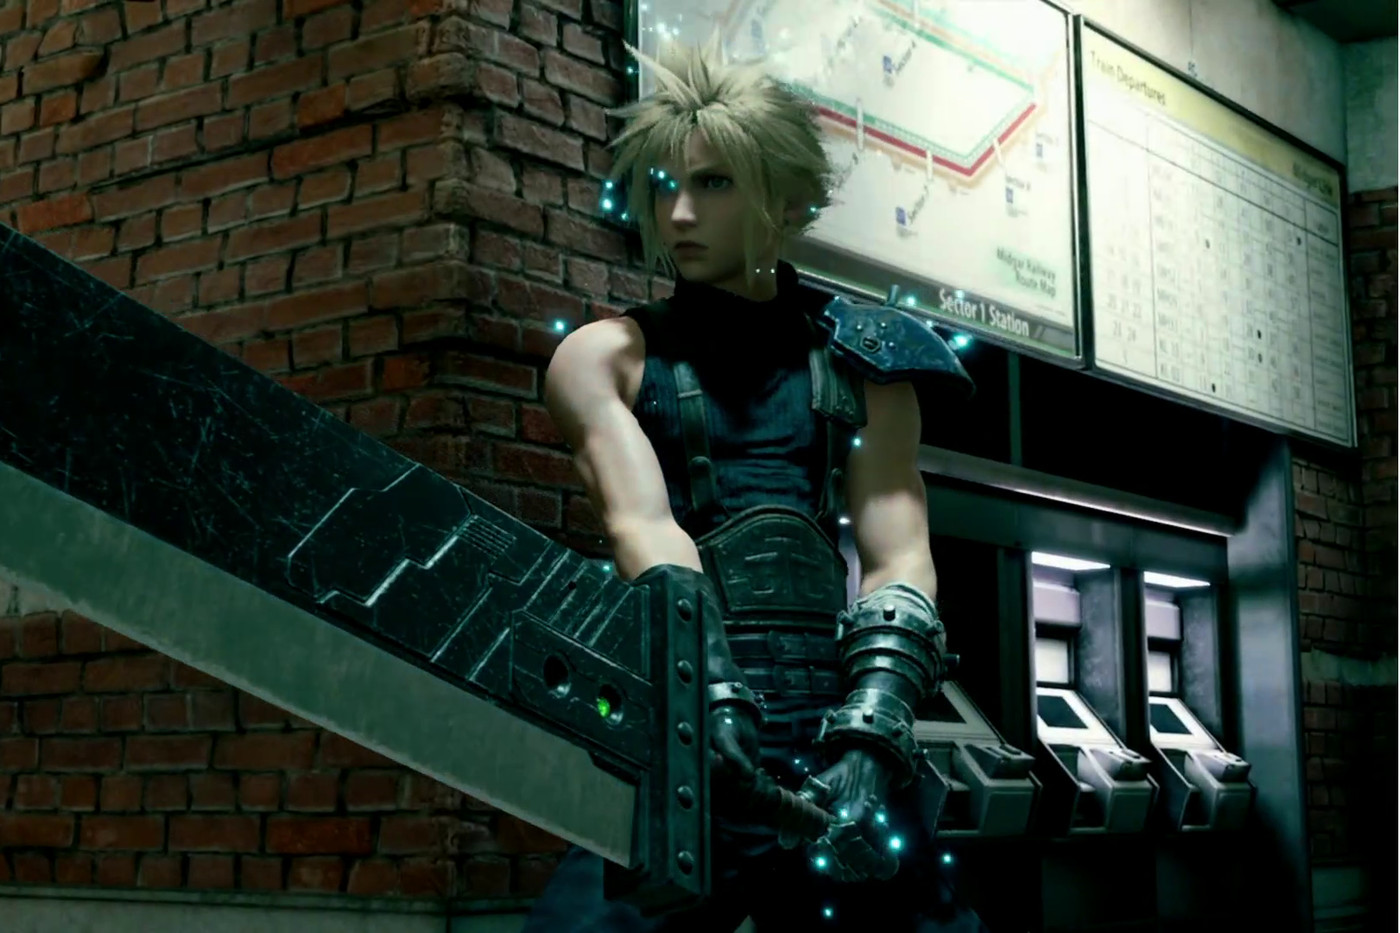 New Final Fantasy 7 Remake gameplay details revealed at E3 - Polygon